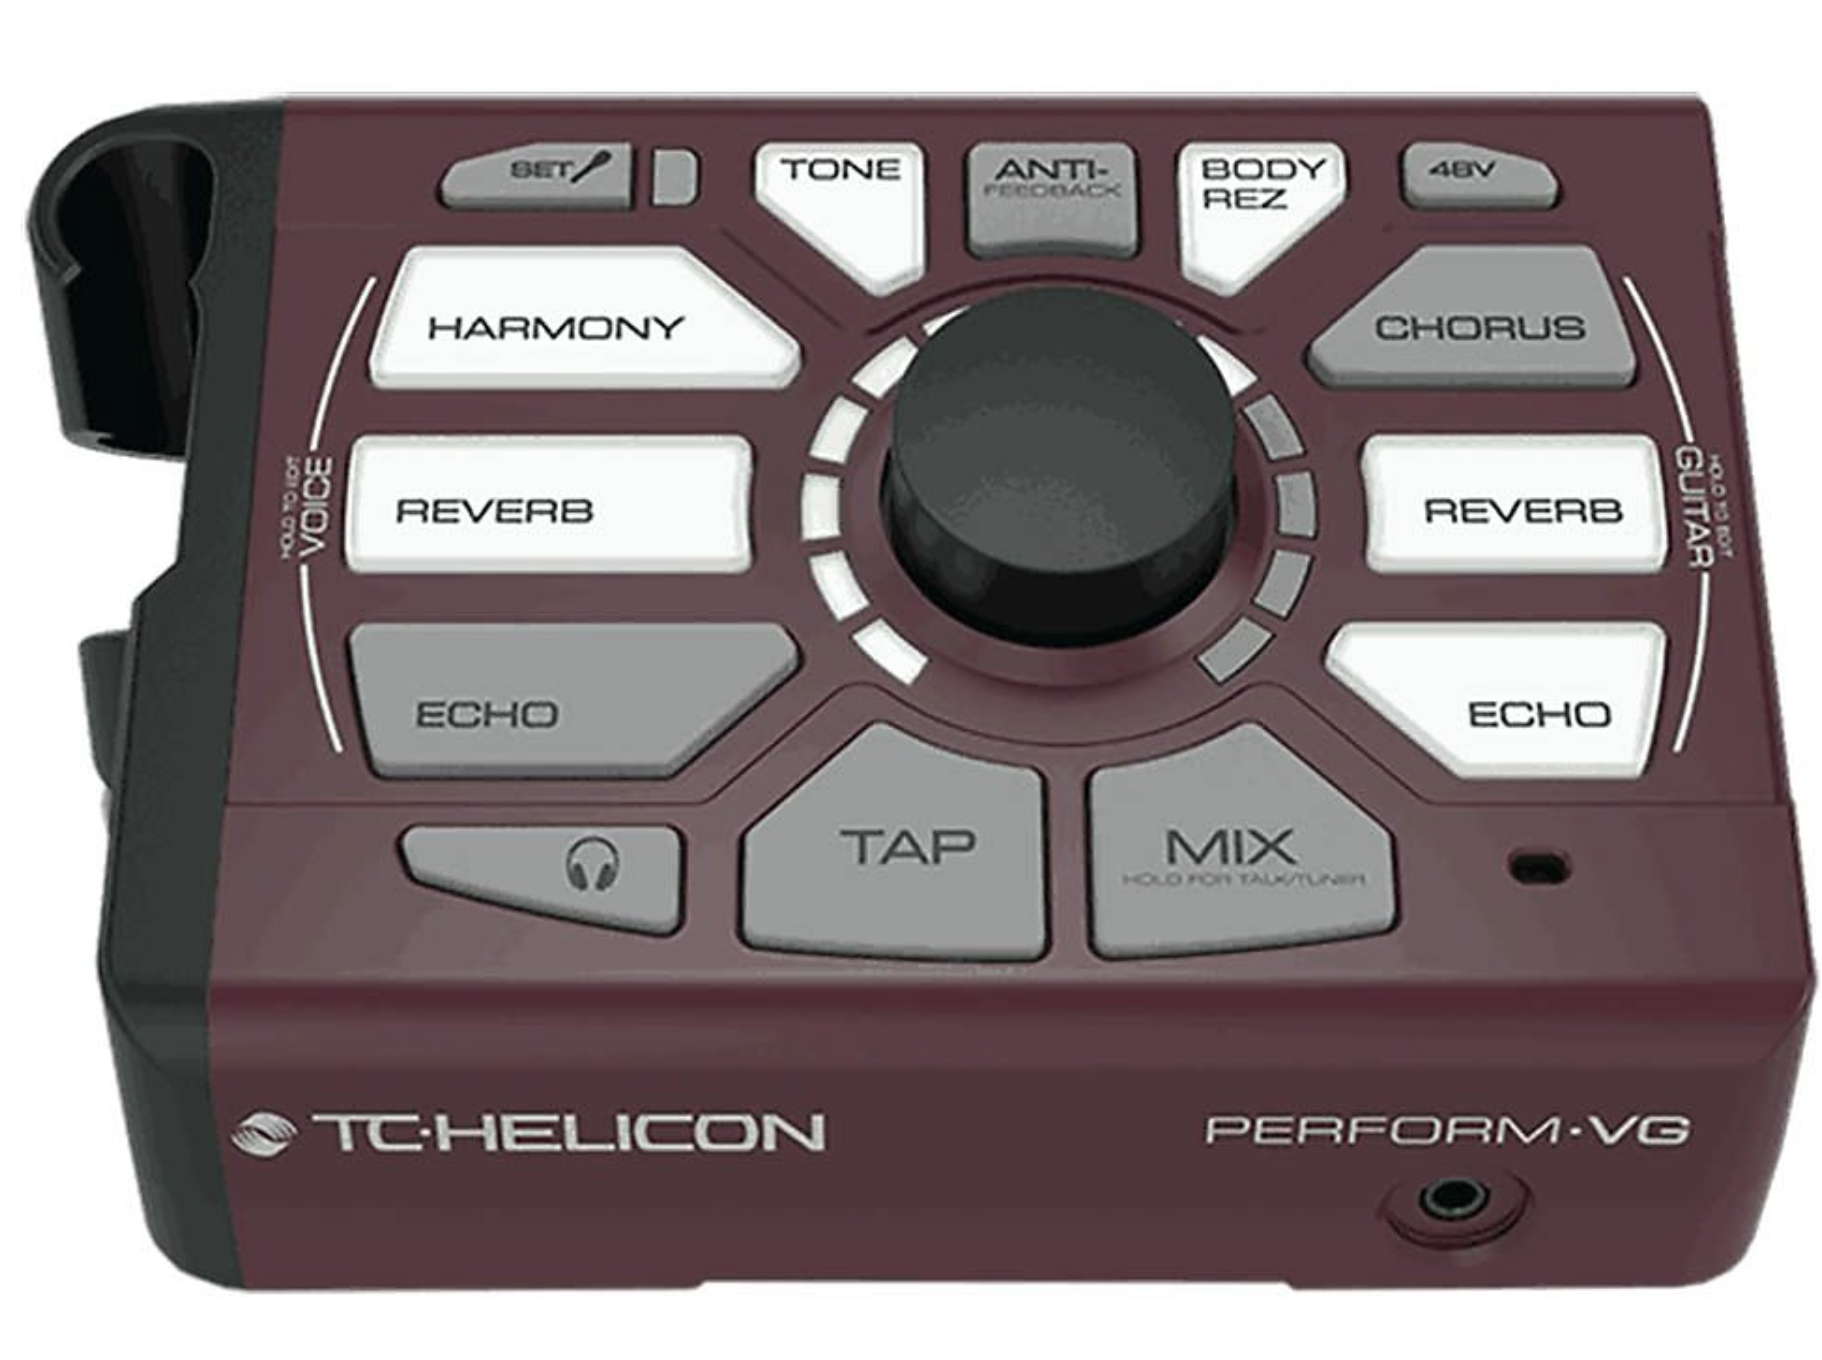 TC HELICON PERFORM-VG VOCAL PROCESSOR FOR ACOUSTIC GUITAR PLAYER (996369005)